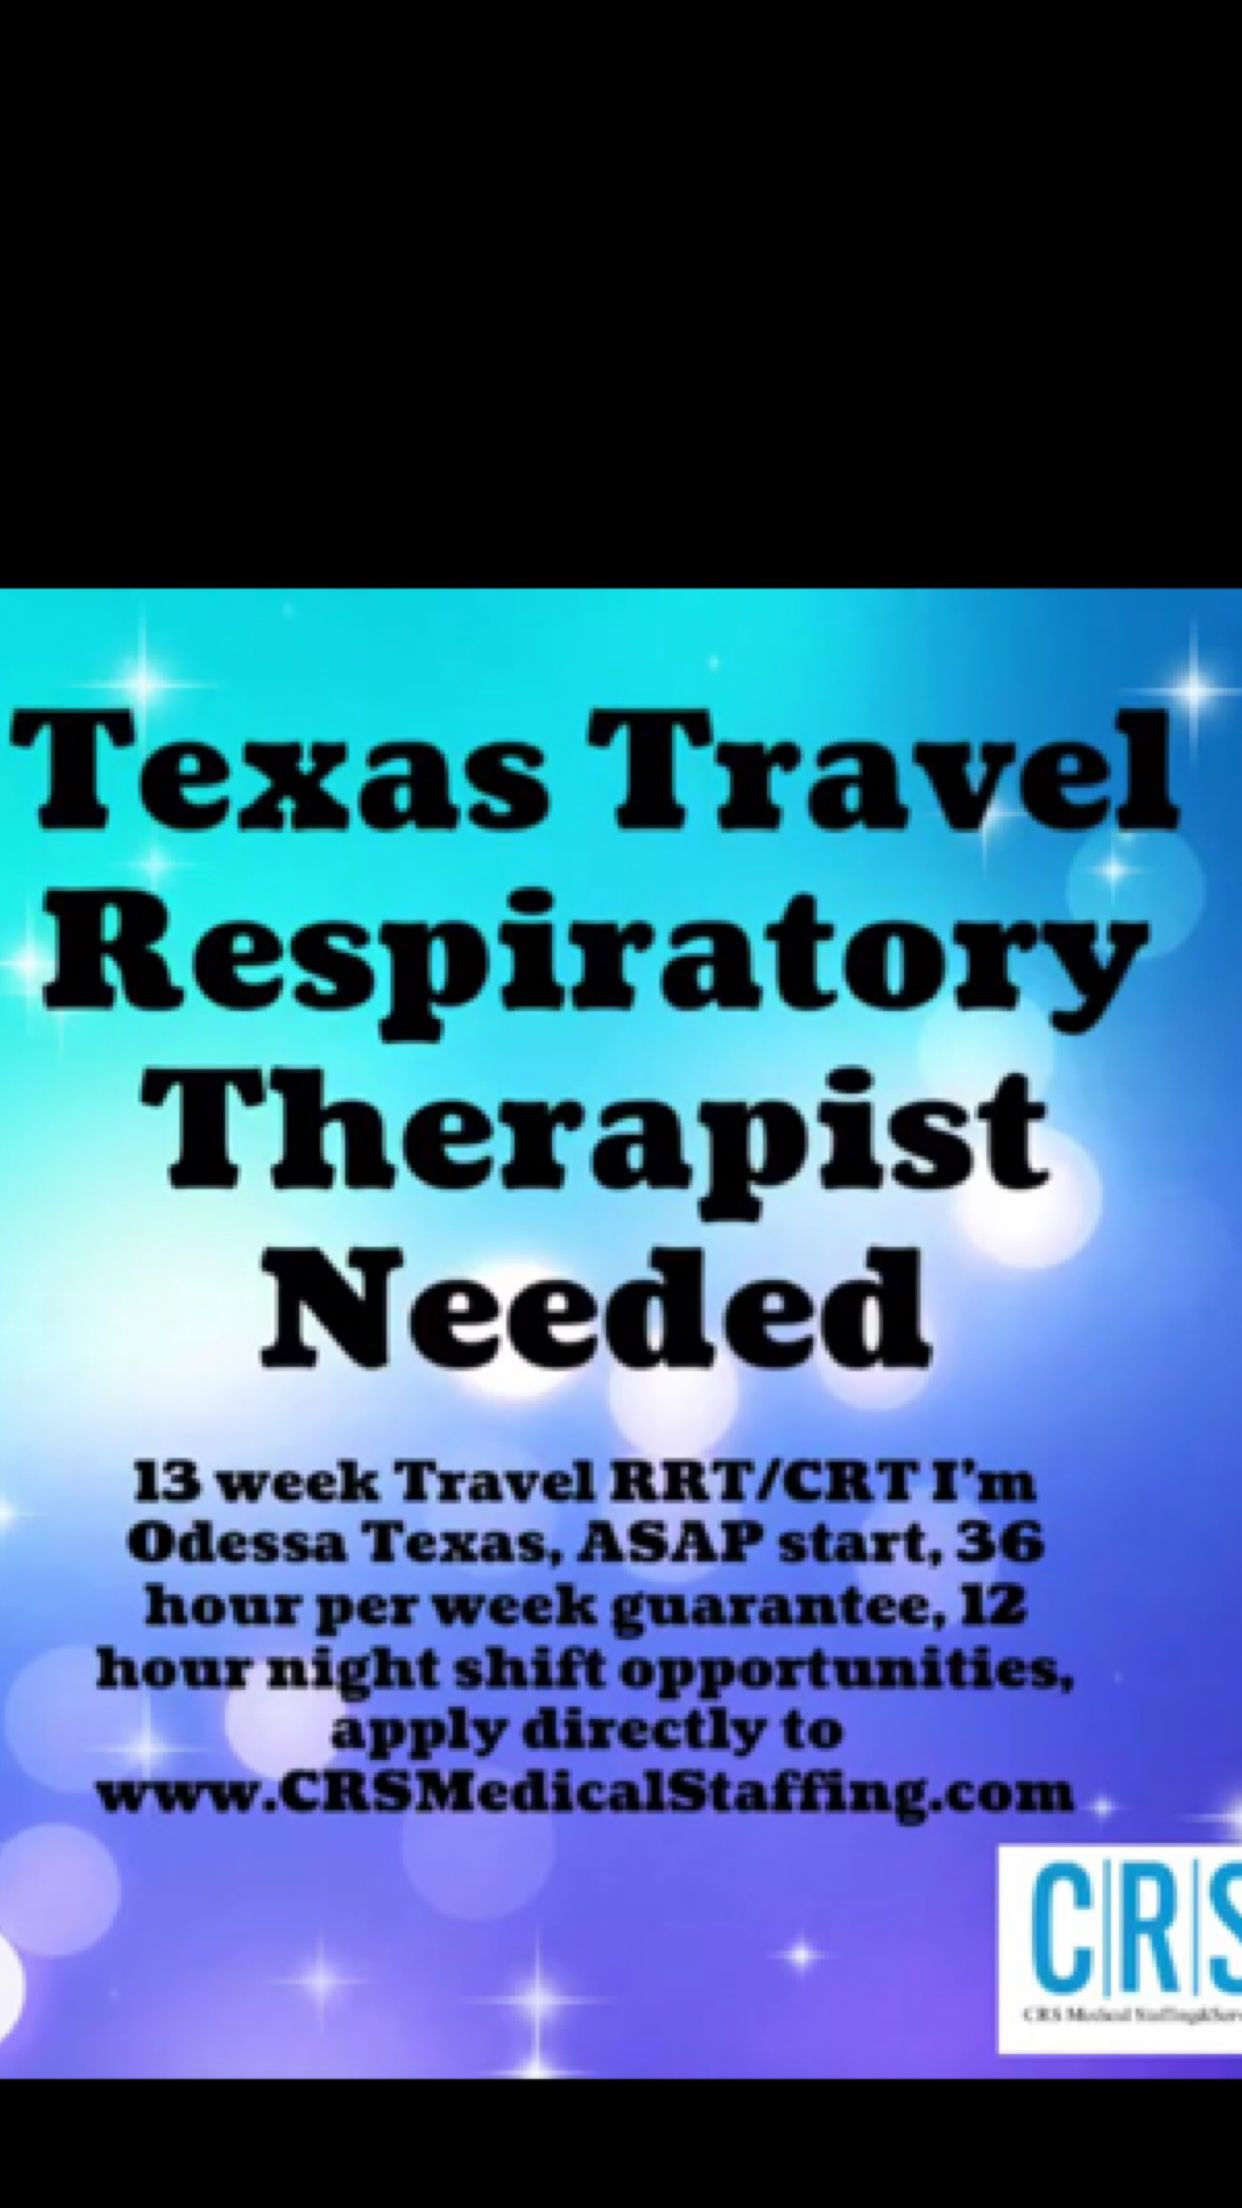 Pin by CRS Medical Staffing & Service on CRS Medical